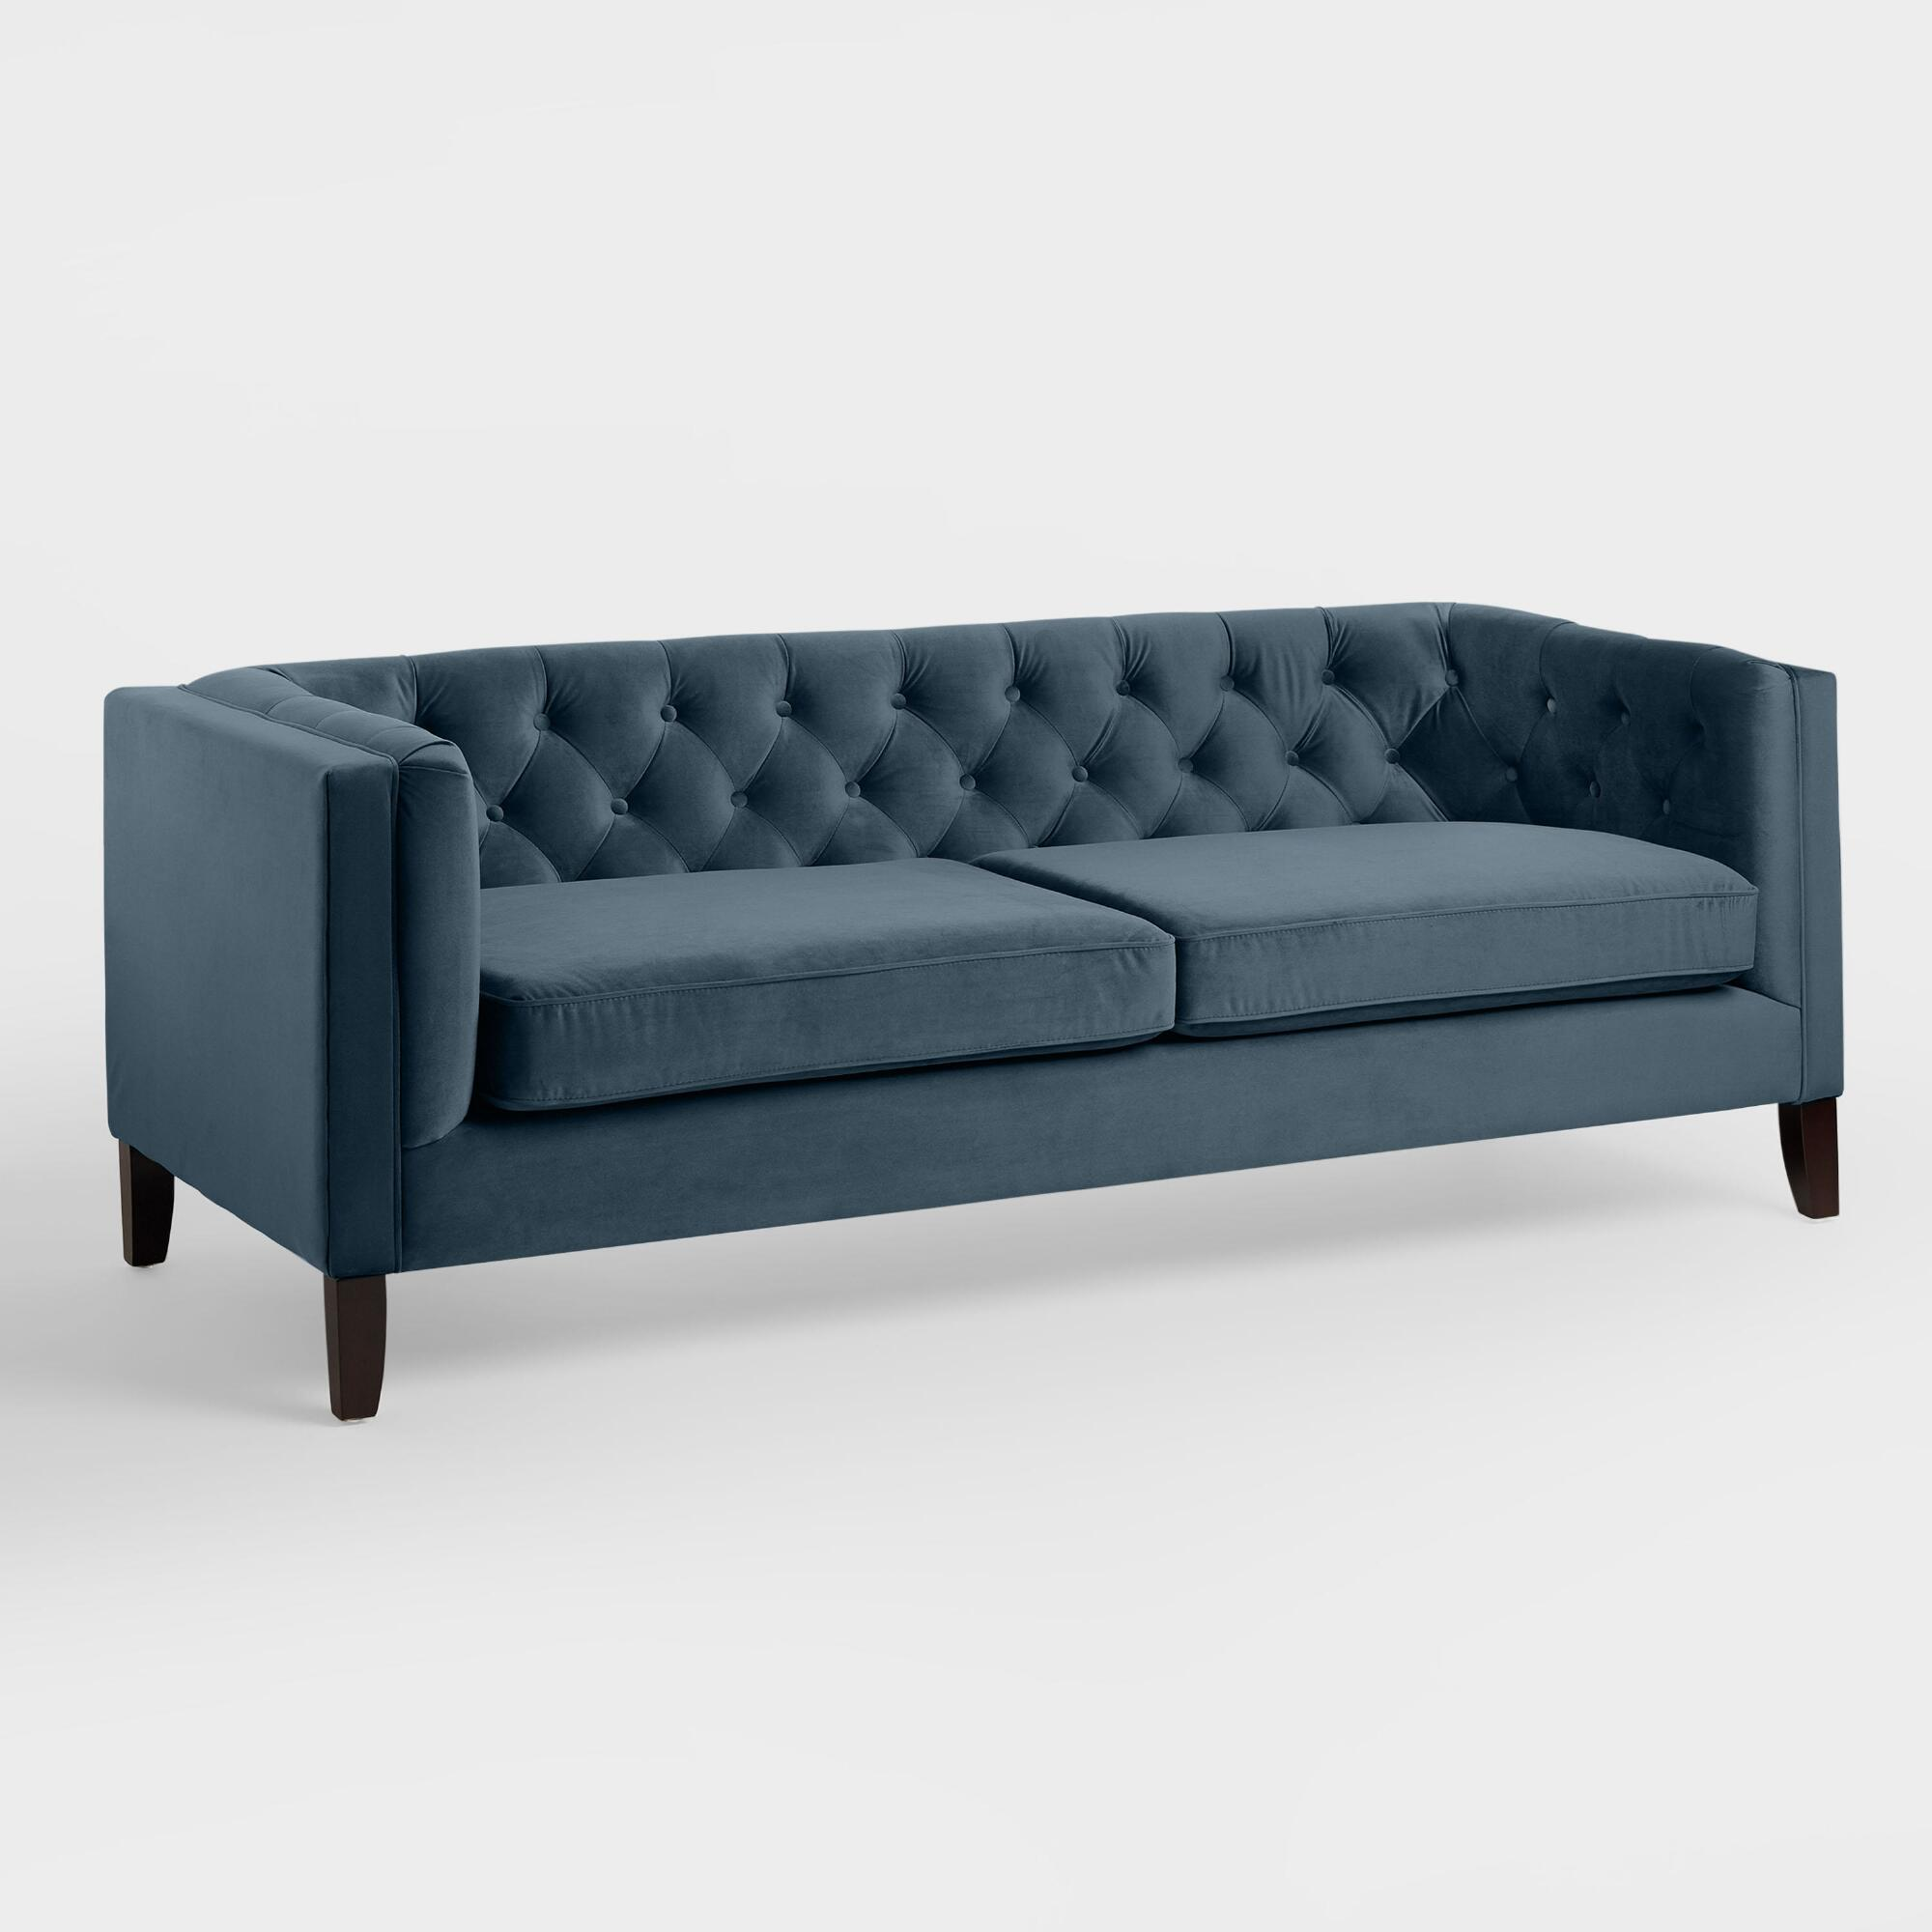 Midnight blue velvet kendall sofa world market for Average cost of sofa